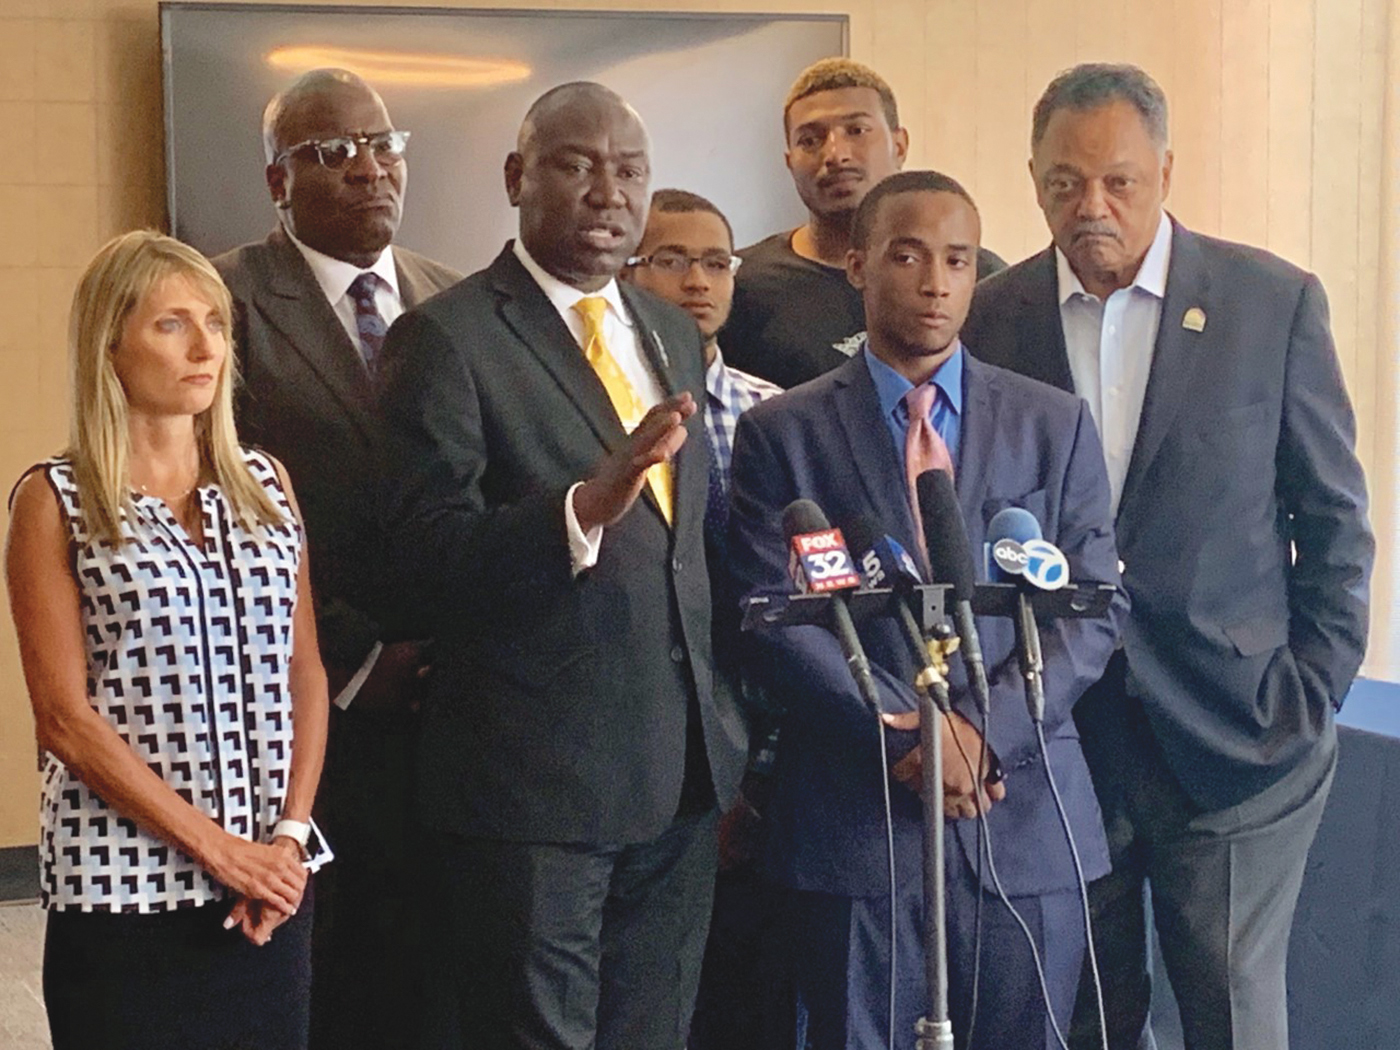 Shaquille Dukes' (center) along side Attorney Ben Crump (left) and Reverend Jesse Jackson (right) at Shaquille's press conference. (Courtesy photo)